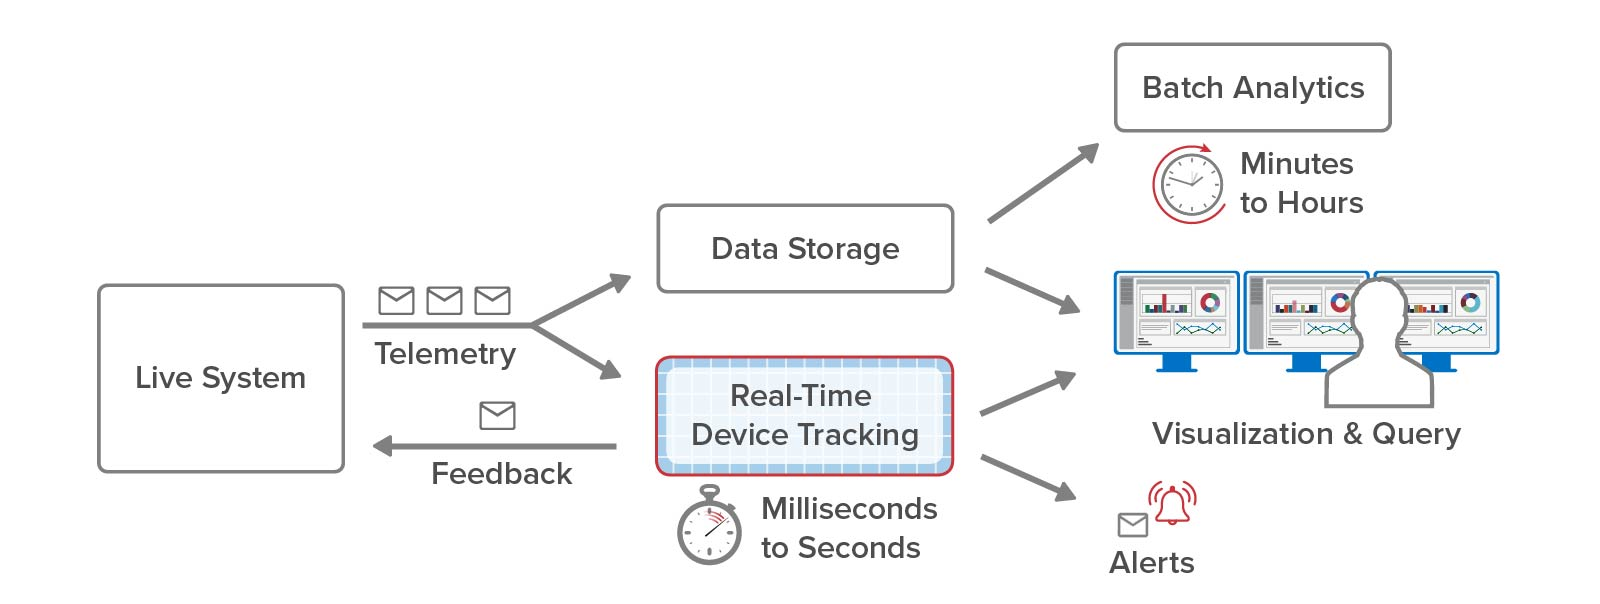 Real-time device tracking can be seamlessly added to conventional streaming analytics.